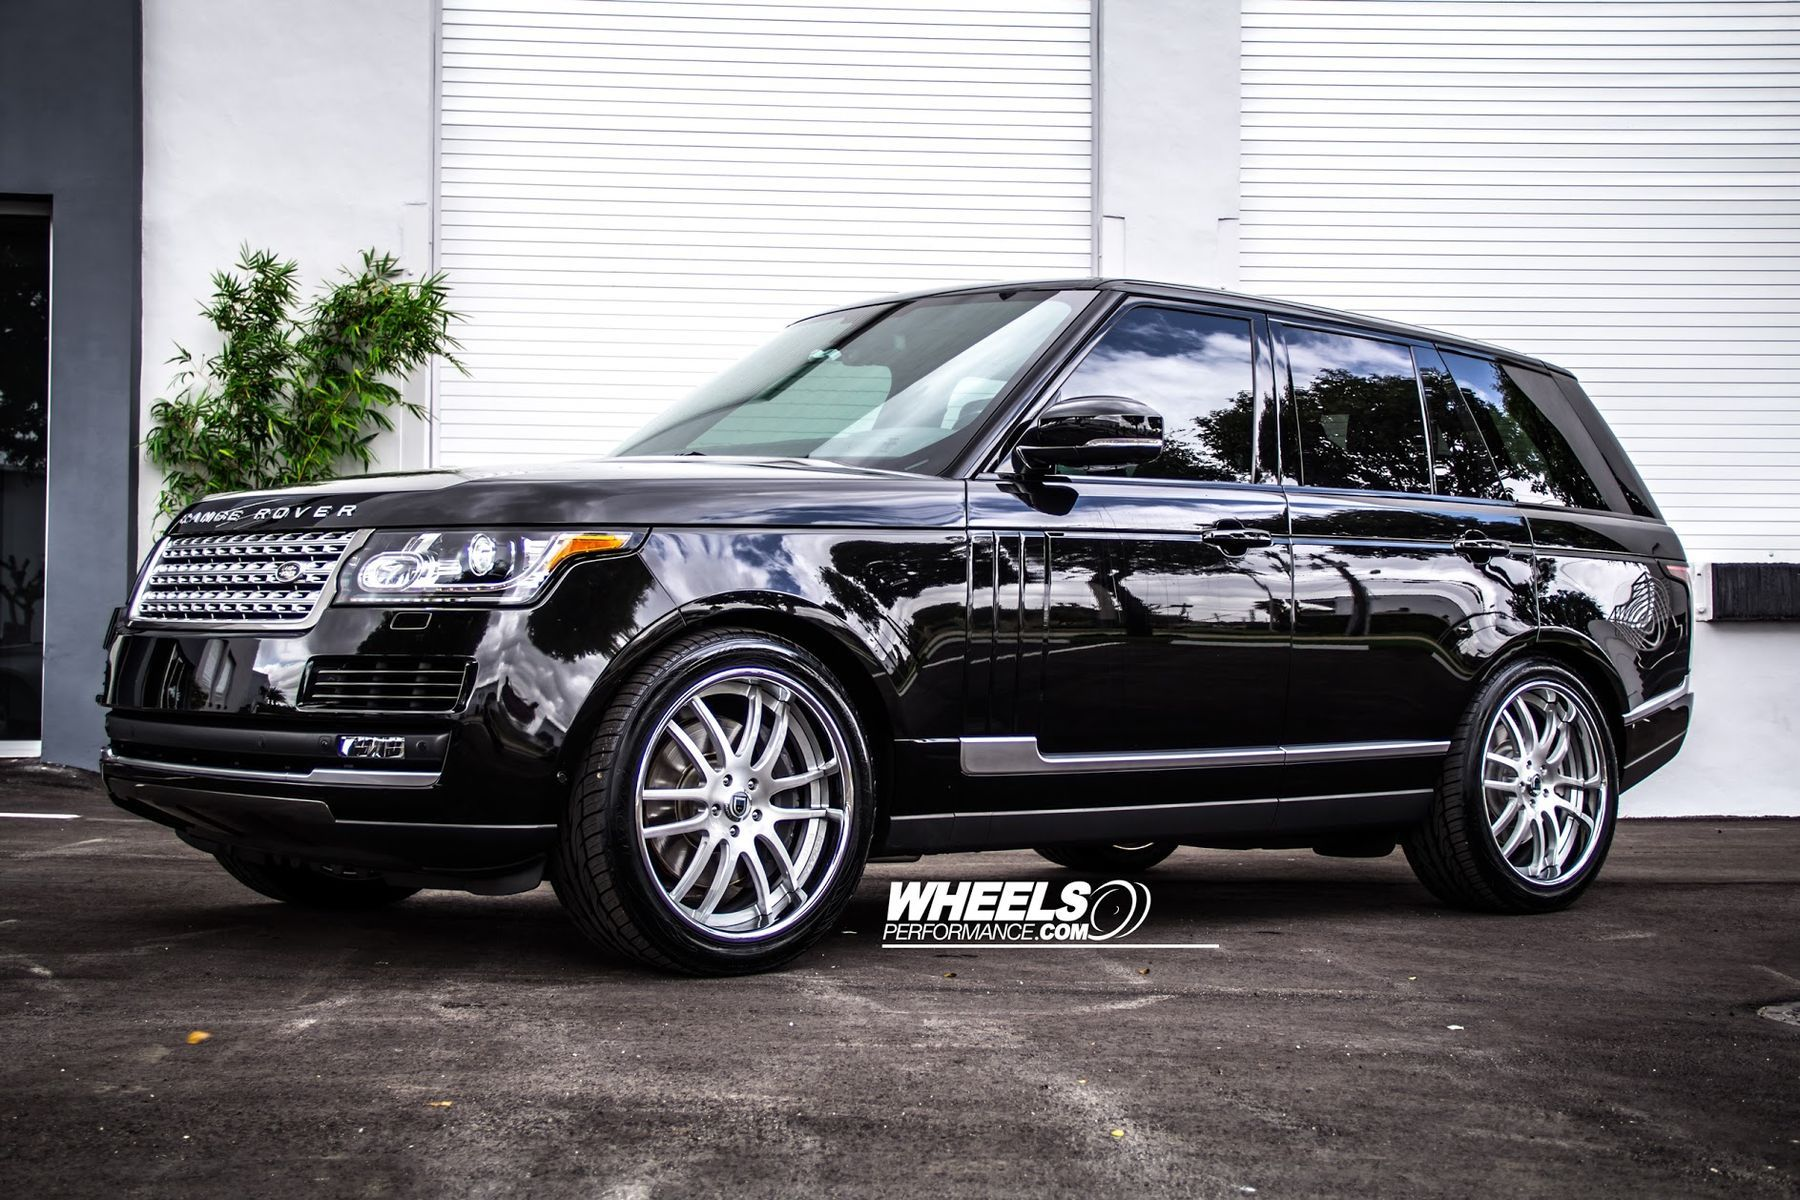 2014 Land Rover Range Rover | OUR CLIENT'S RANGE ROVER WITH 22